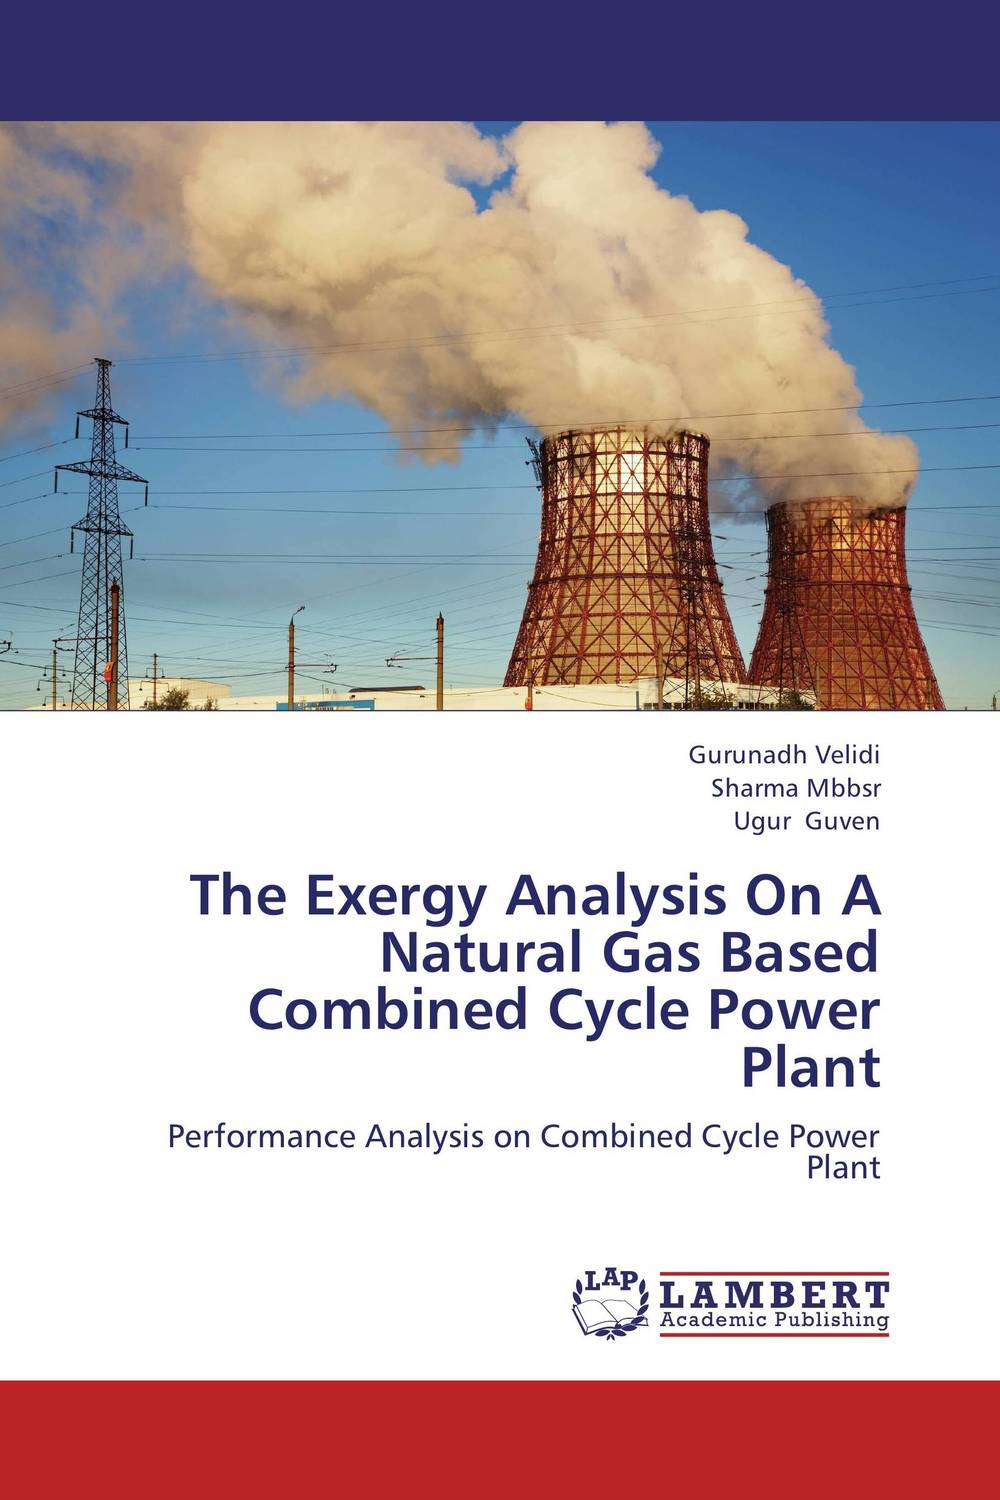 The Exergy Analysis On A Natural Gas Based Combined Cycle Power Plant tungsten cycle phenotype side length of the cube weighs about 19 16g 10mm w 99 95%